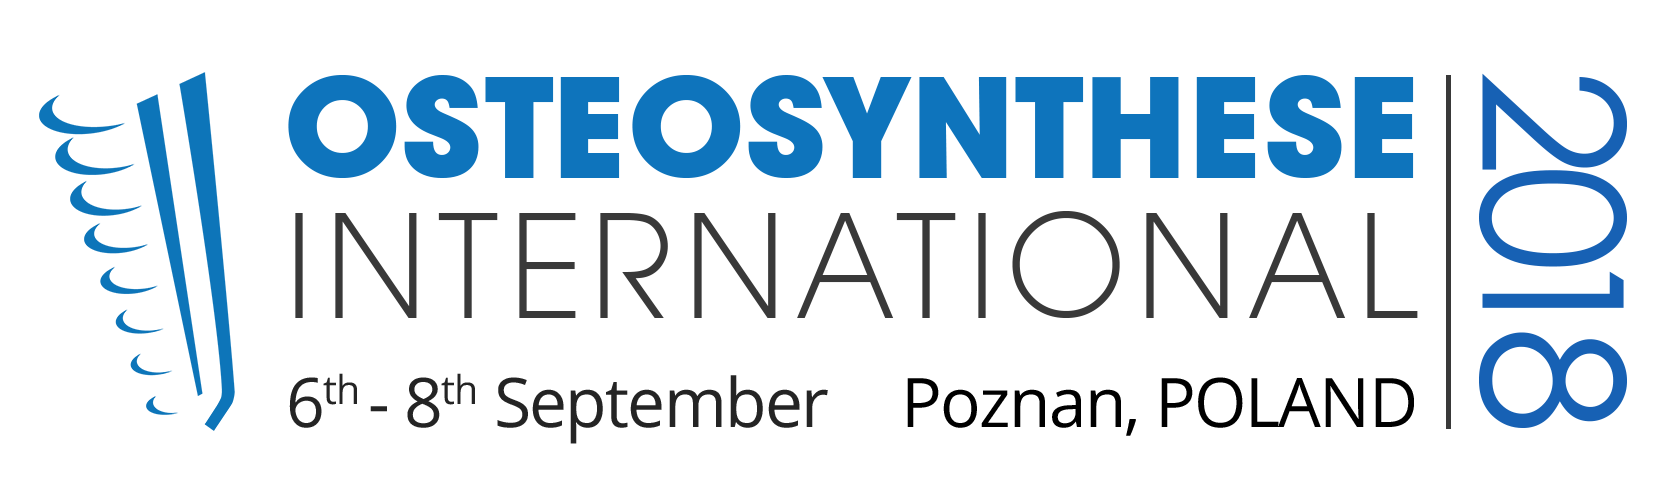 Osteosynthese International 2018